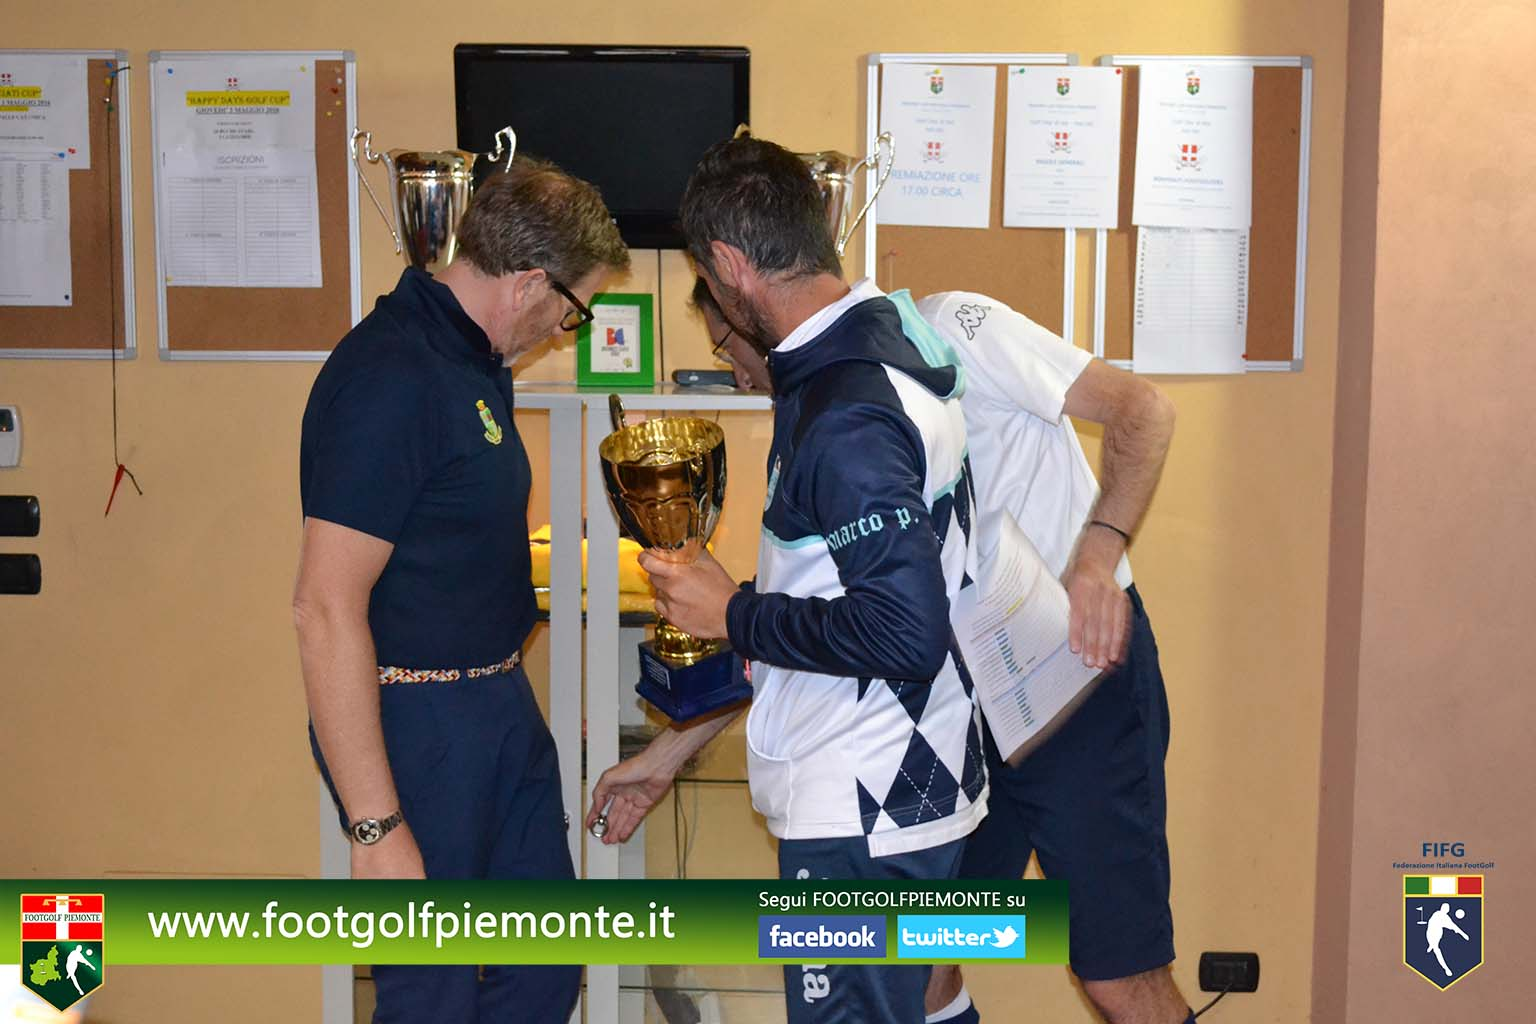 FOTO 9 Regions' Cup Footgolf Piemonte 2016 Golf Città di Asti (At) 30apr16-133